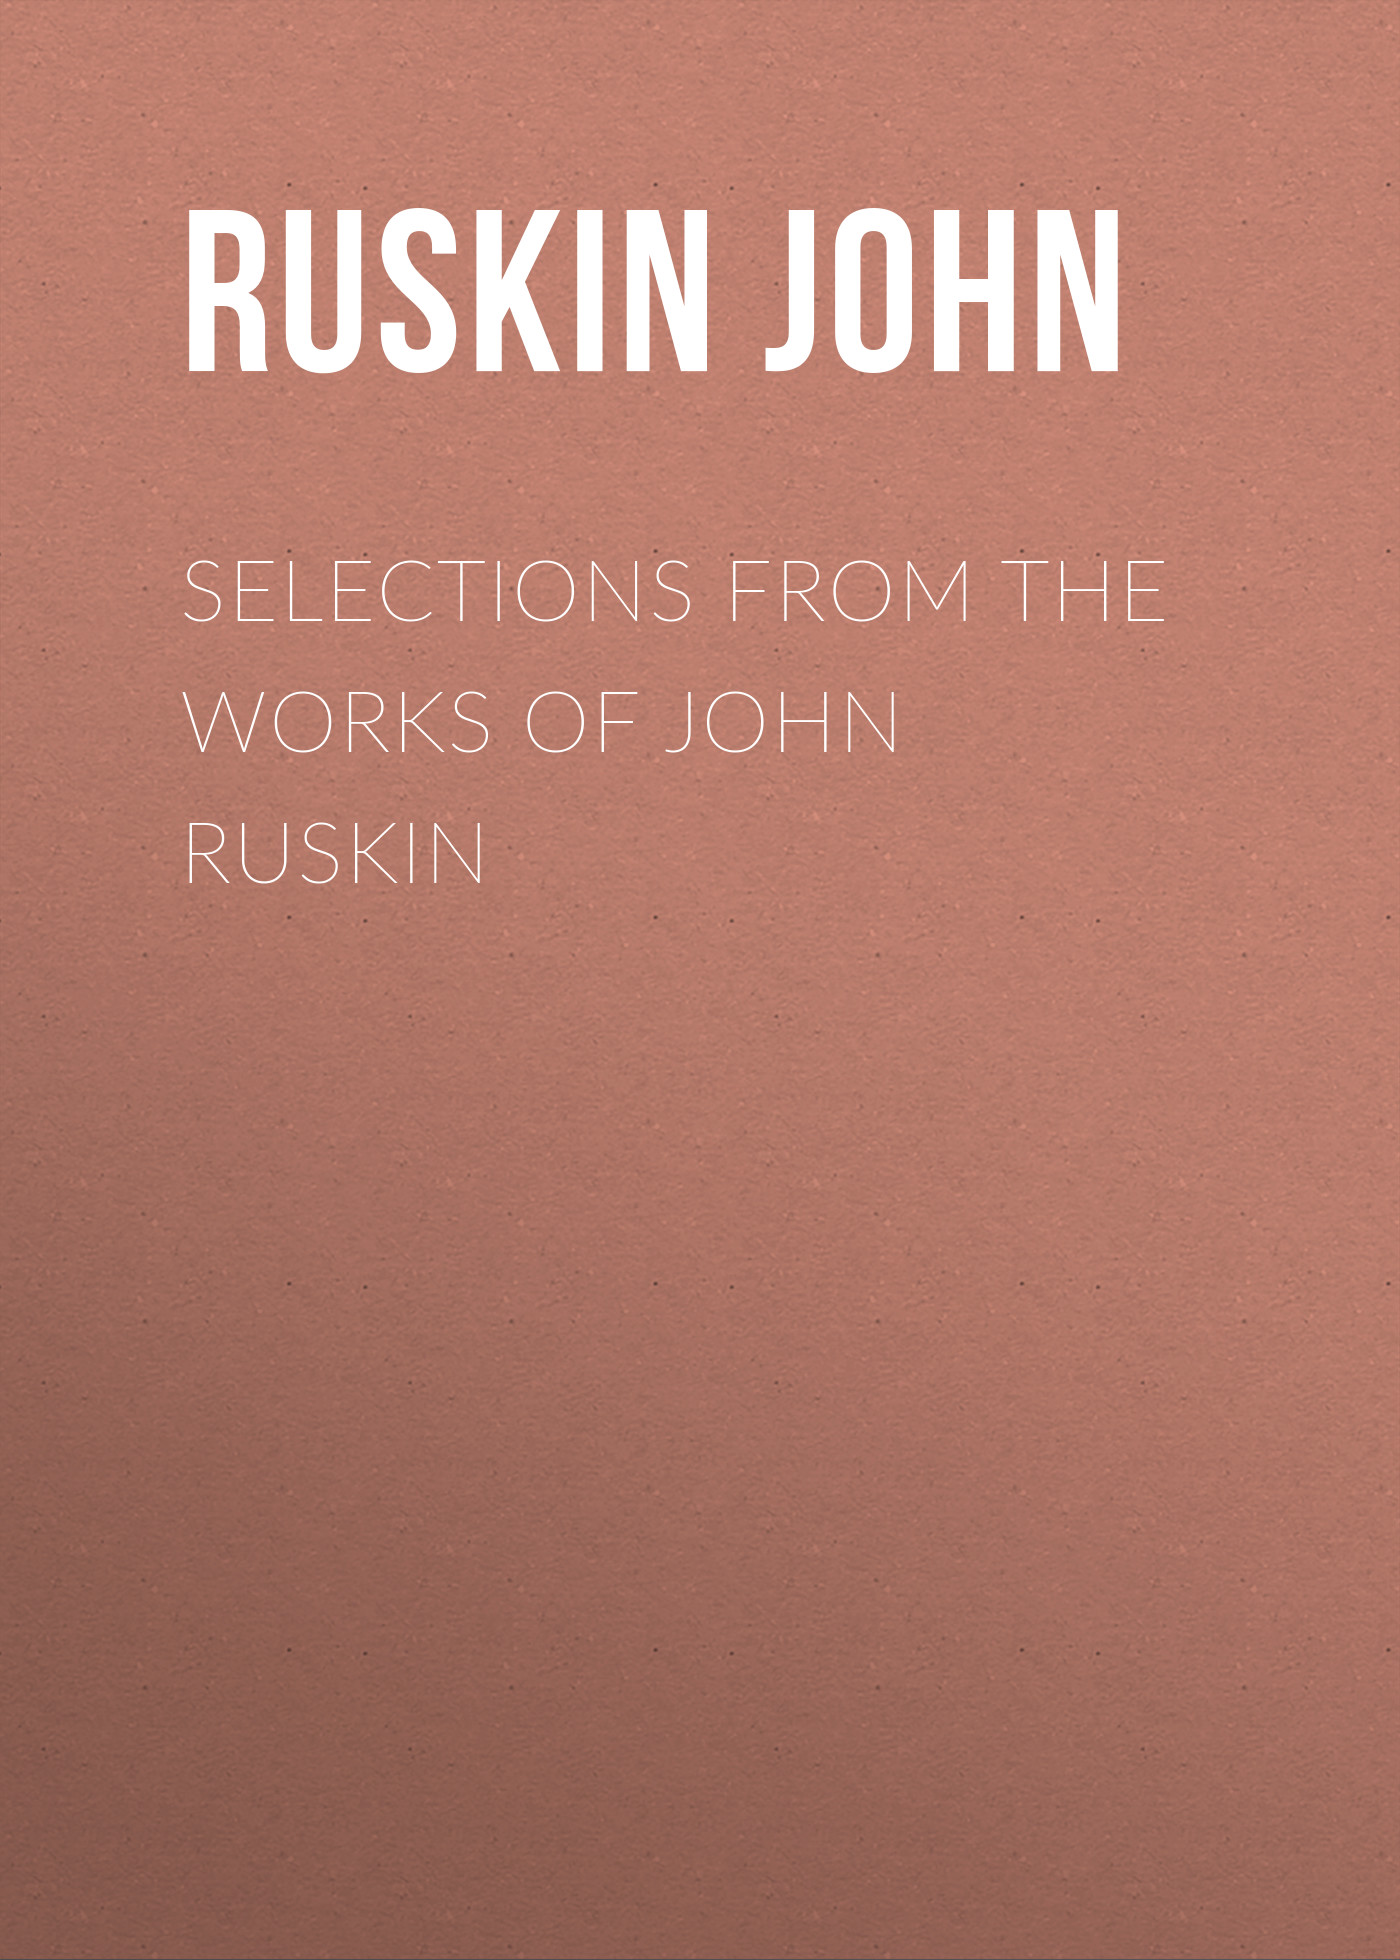 лучшая цена Ruskin John Selections From the Works of John Ruskin